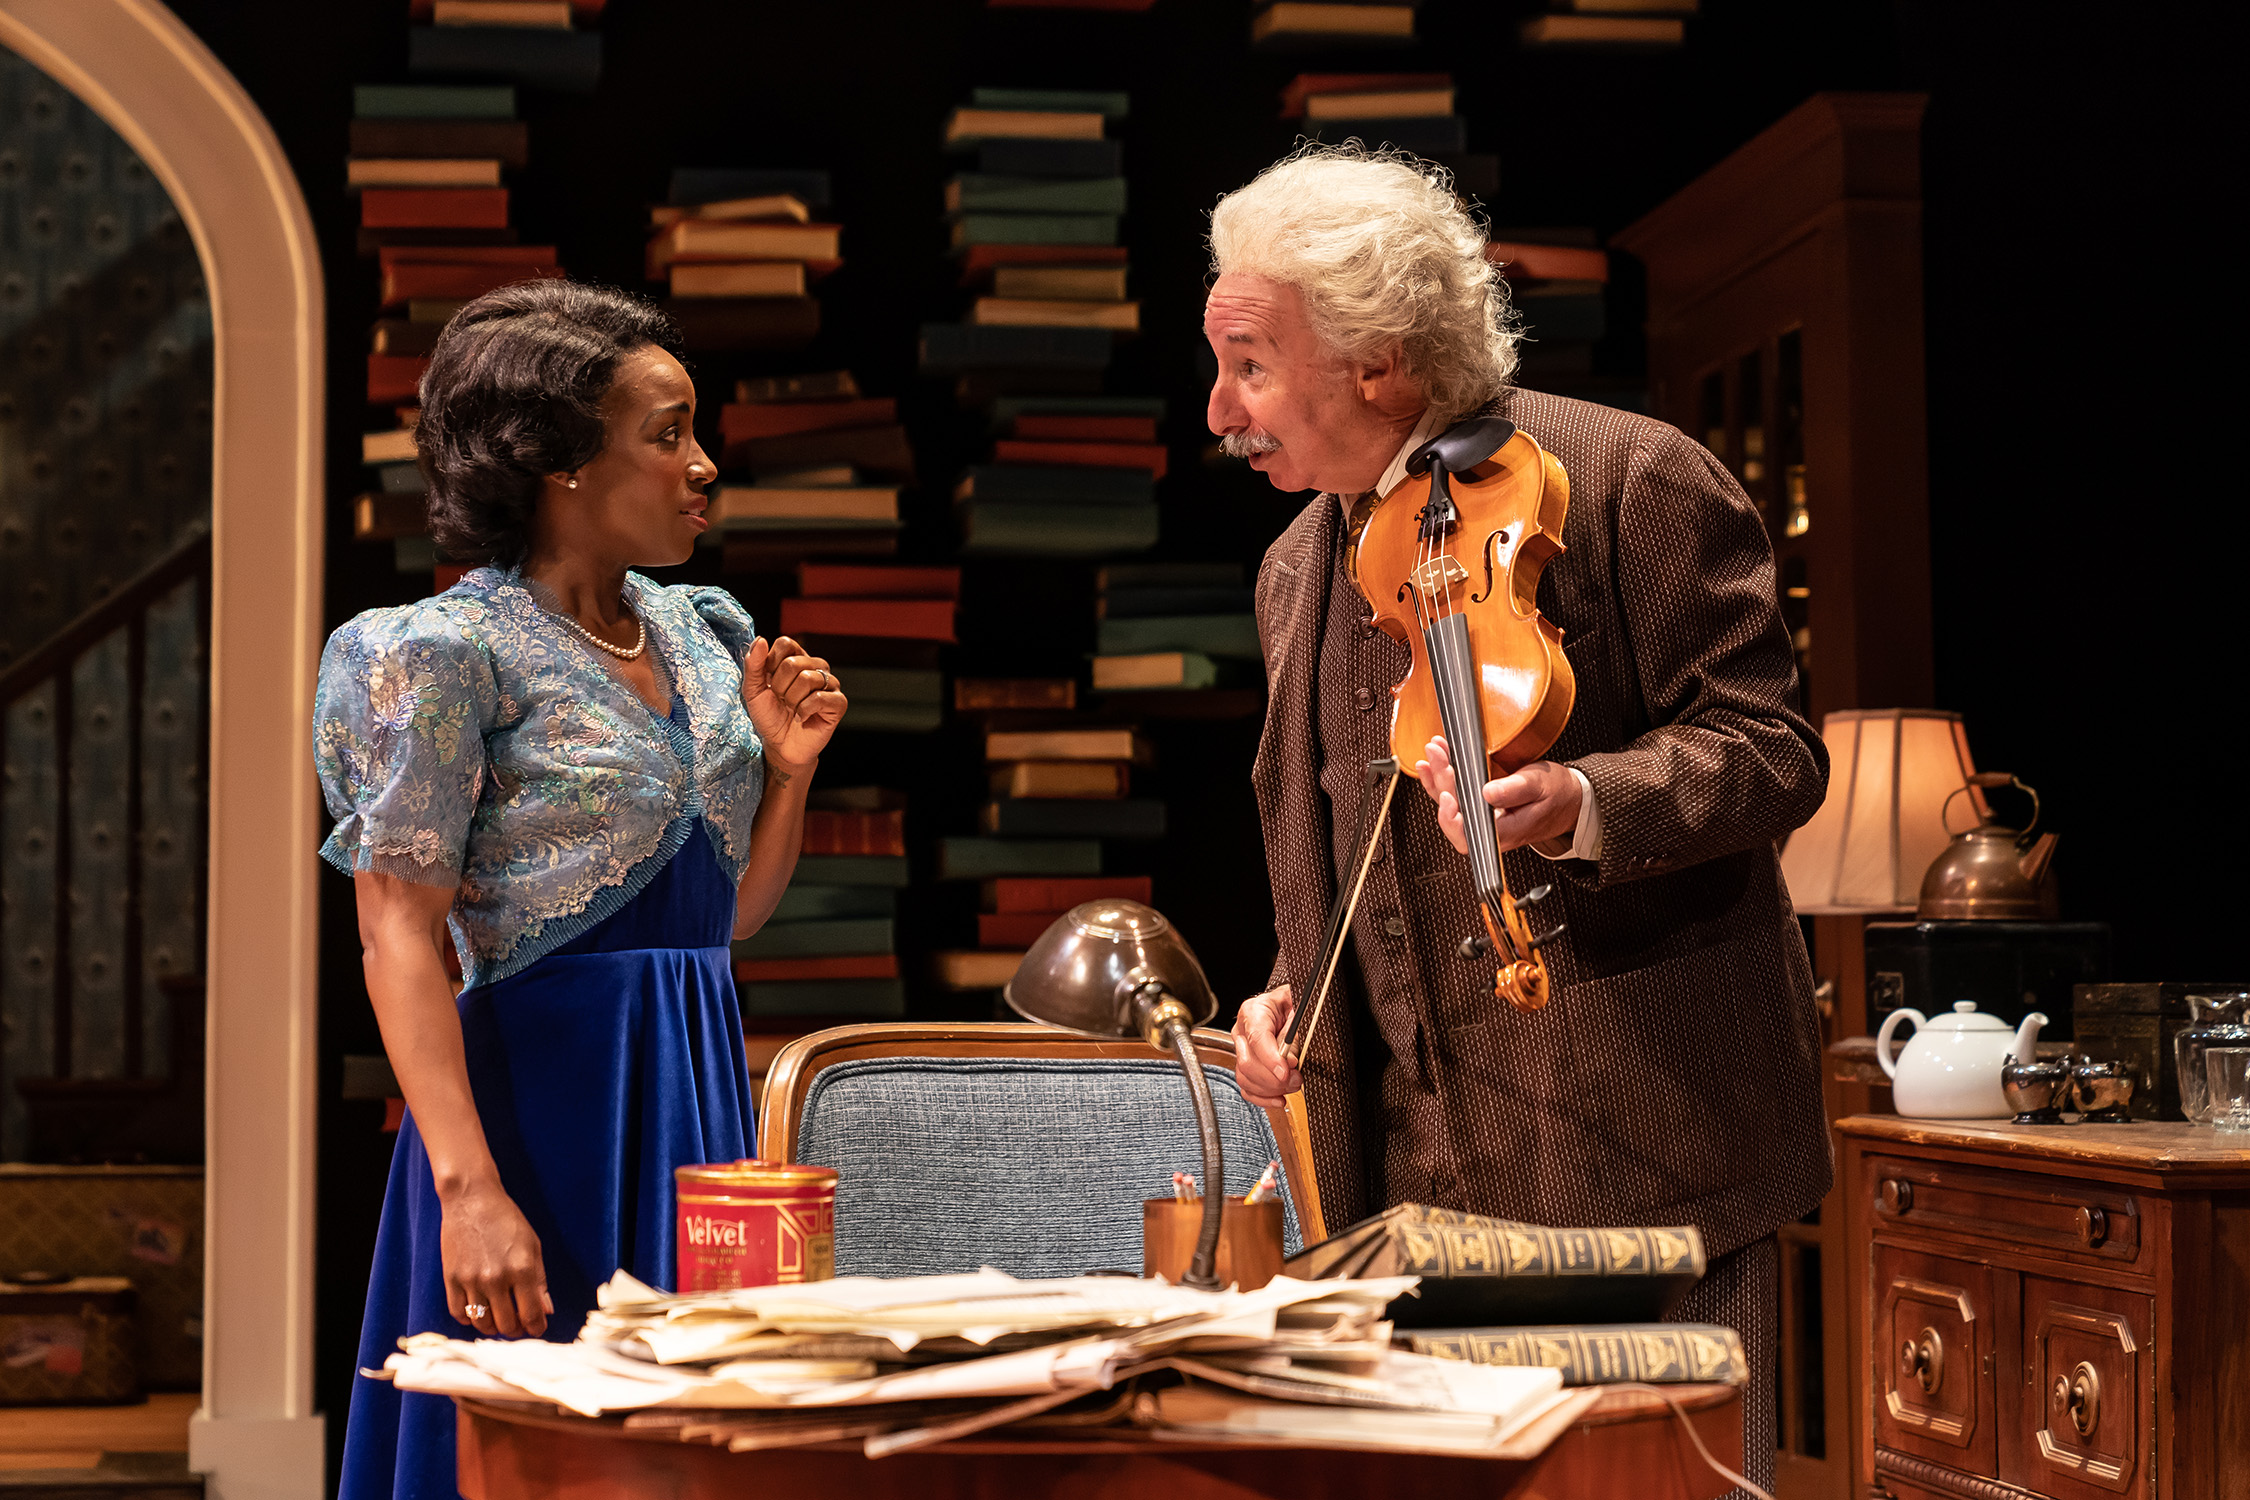 """Felicia Curry as Marian Anderson and Christopher Bloch as Albert Einstein in the Ford's Theatre production of Deborah Brevoort's """"My Lord, What a Night"""" directed by Sheldon Epps. (Photo by Scott Suchman)."""